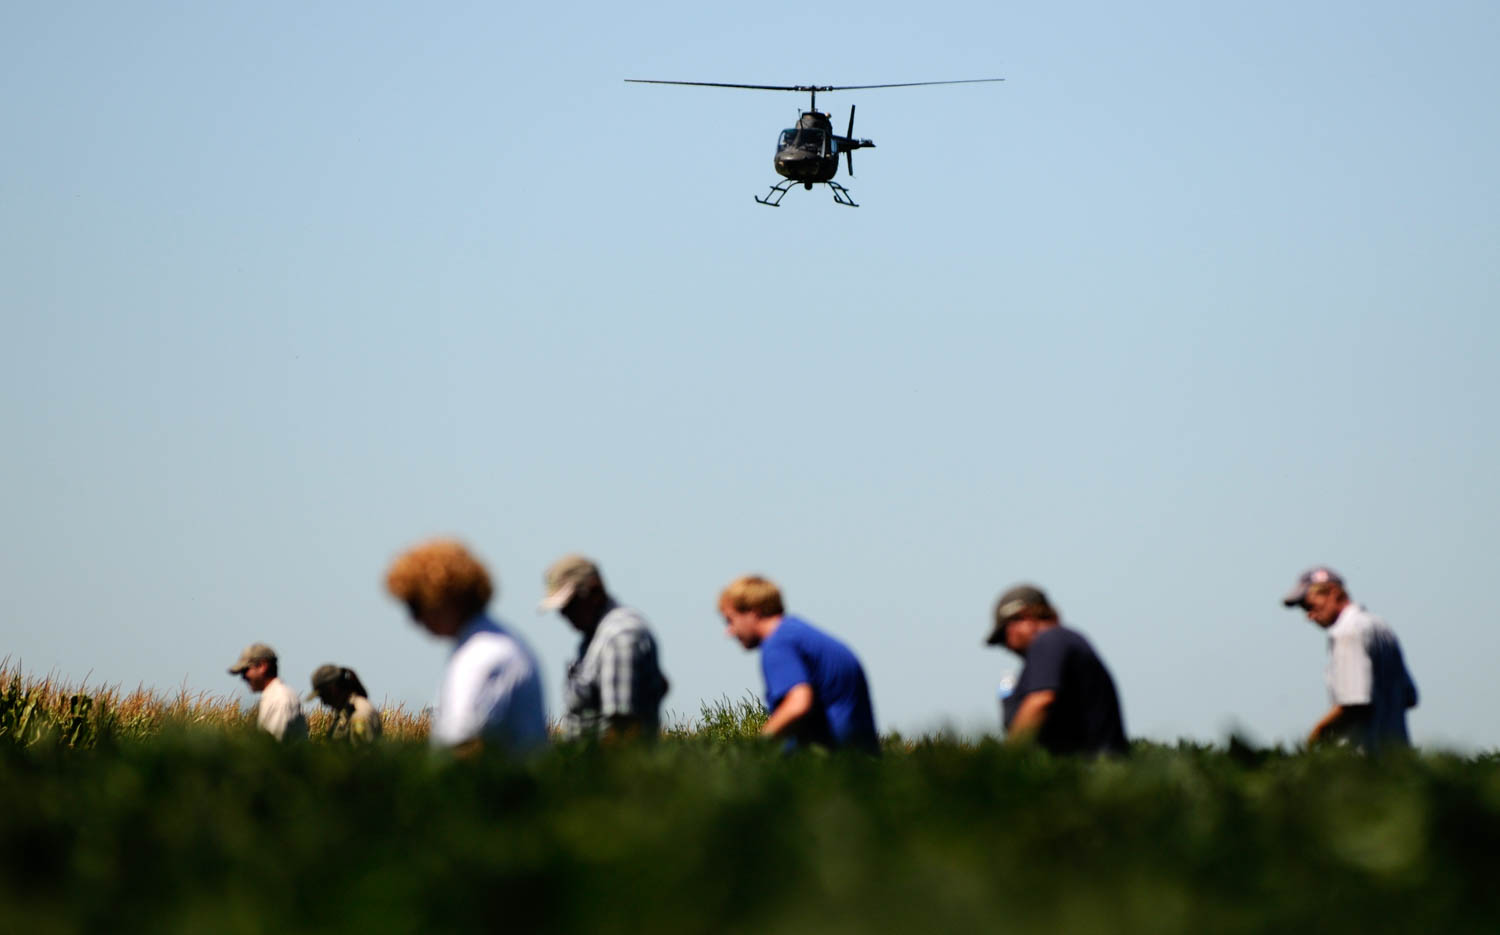 While helicopter searches from above volunteers and law enforcement search the soybean field north of the house where a 2-year-old boy went missing from on Monday August 6, 2012. The little boy was reported missing shortly after 10:30 a.m. this morning, he was found after being lost for hours in a farm field. According to Jeff Dale, chief deputy of the Mercer County Sheriff's Office, the boy was found uninjured three-quarters of a mile northwest of the home. (Todd Mizener - Dispatch/Argus)